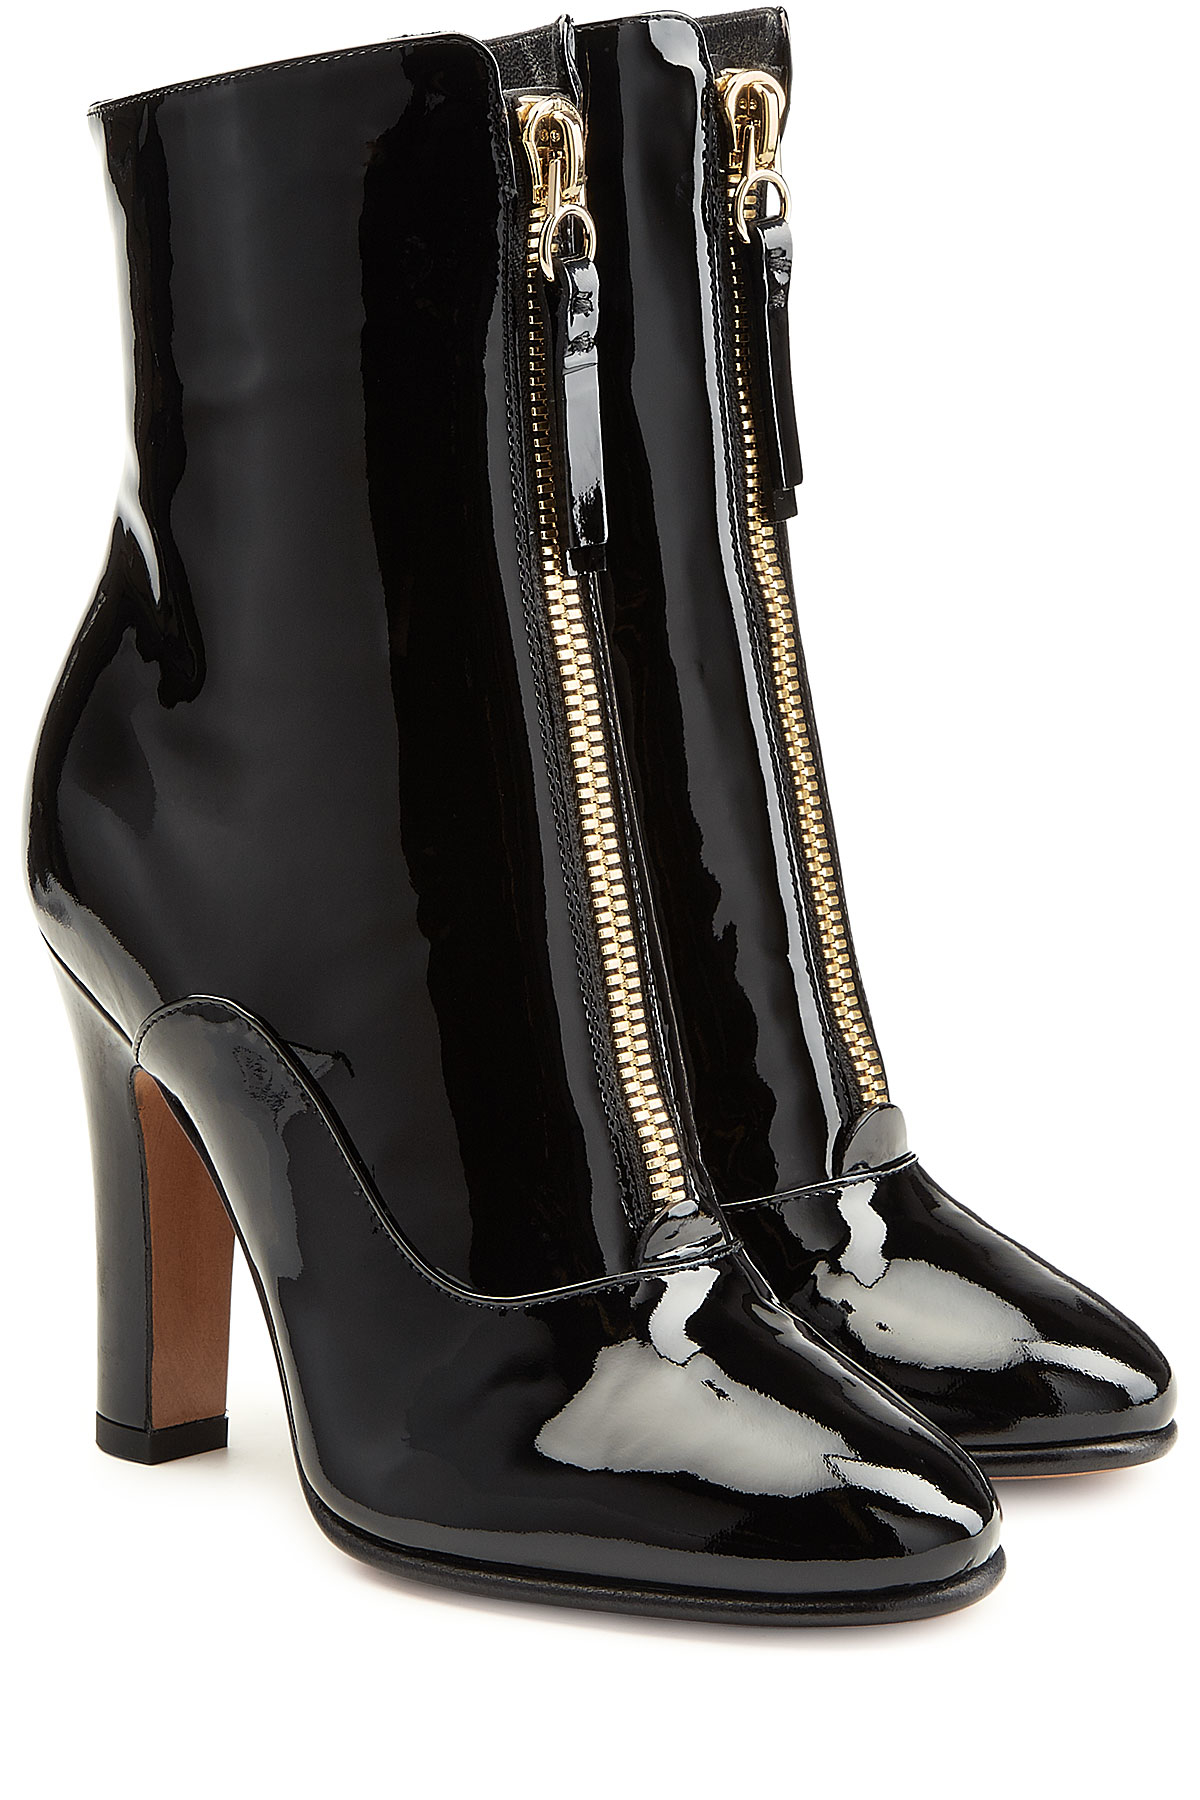 2508a353ecf Valentino Patent Leather Ankle Boots in Black - Lyst